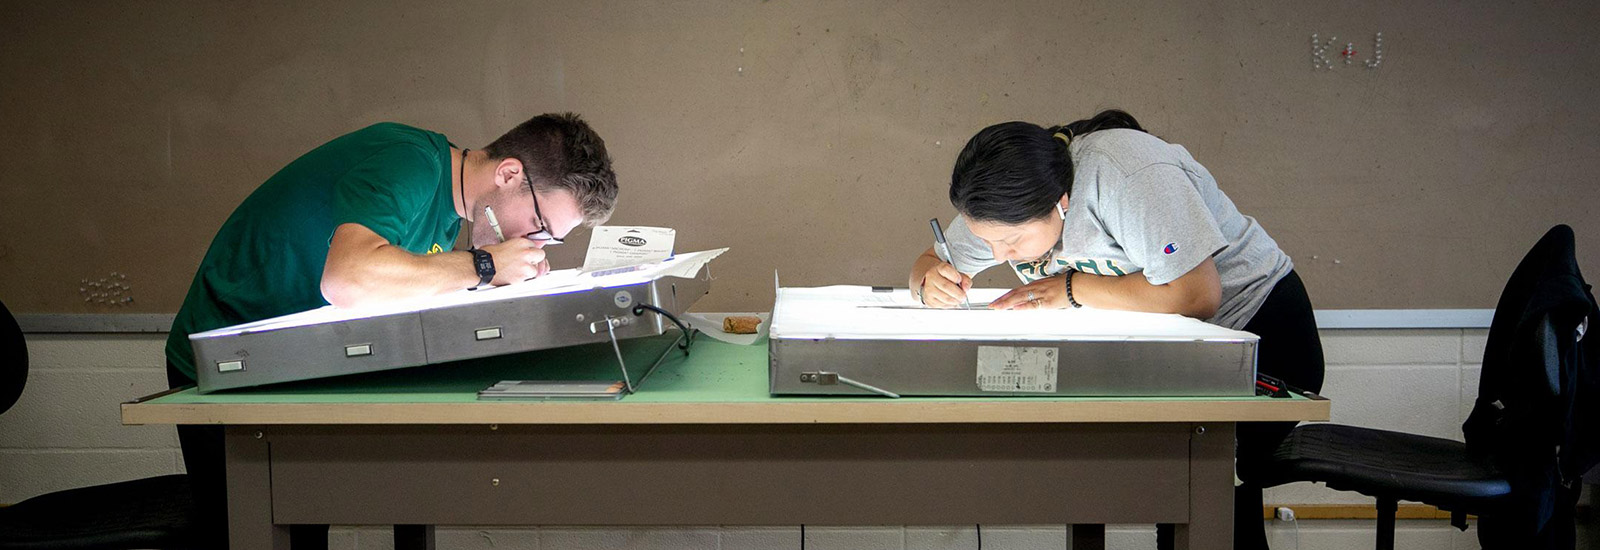 Architectural students drawing on a light table